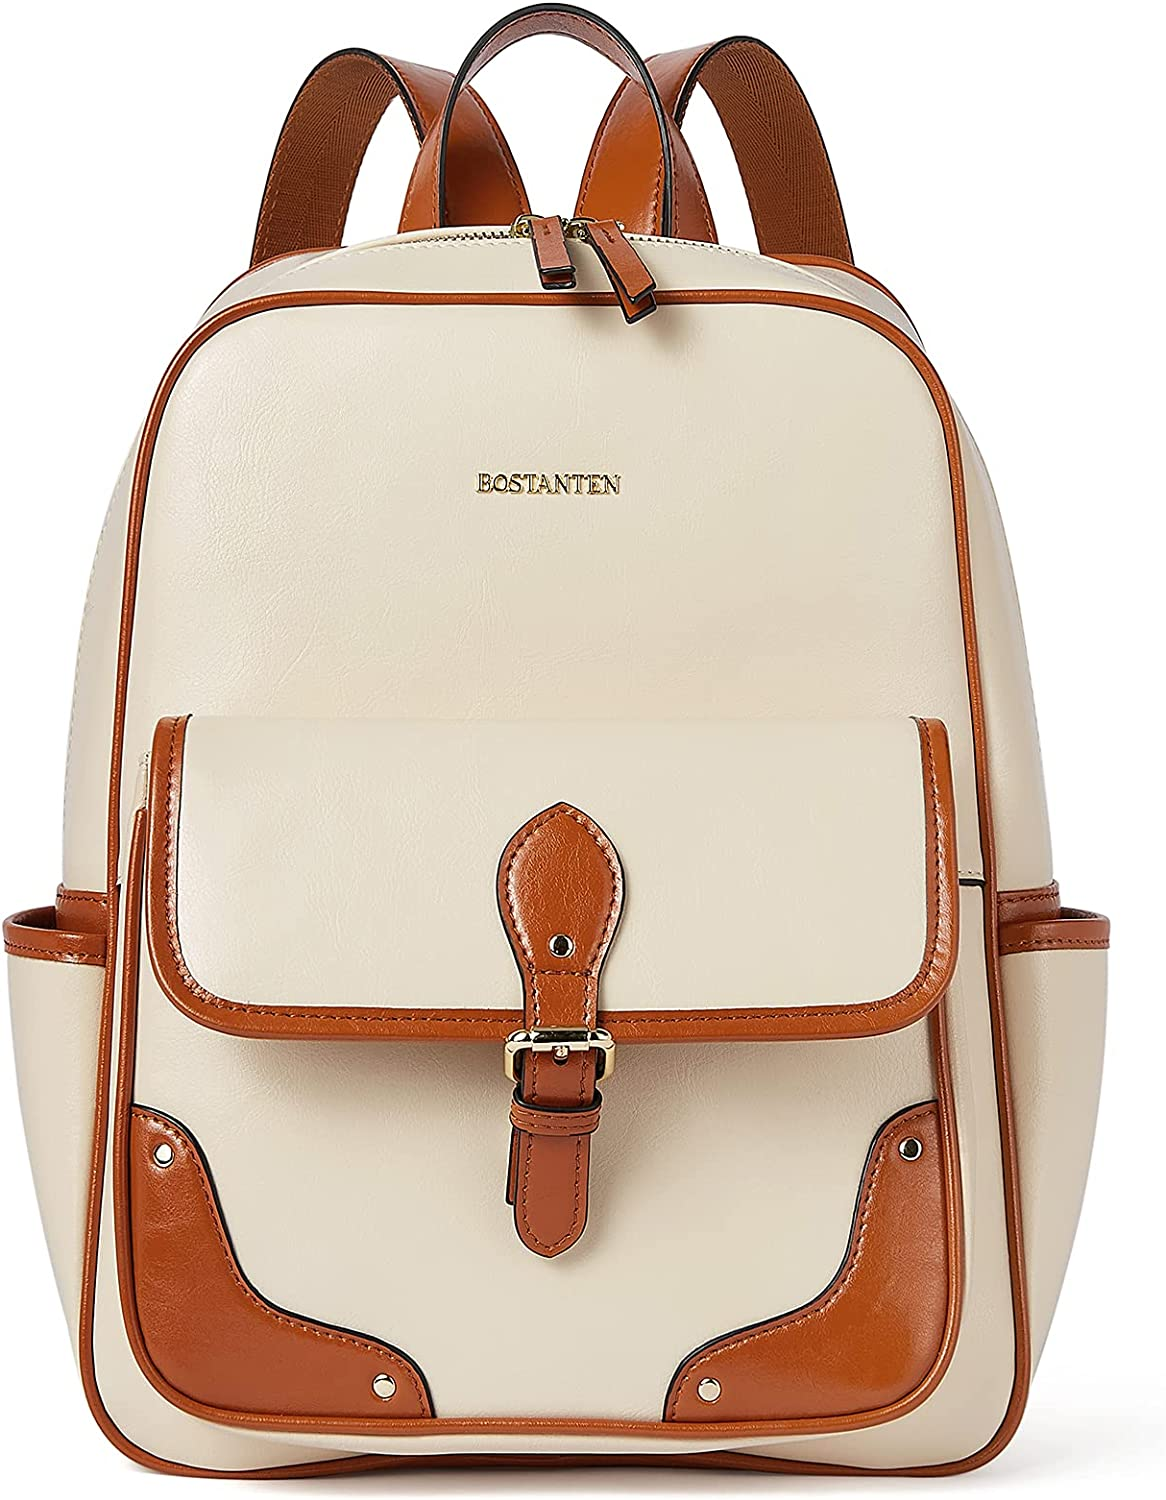 BOSTANTEN Backpack Purse for Women Genuine Leather Small Fashion Backpack Beige